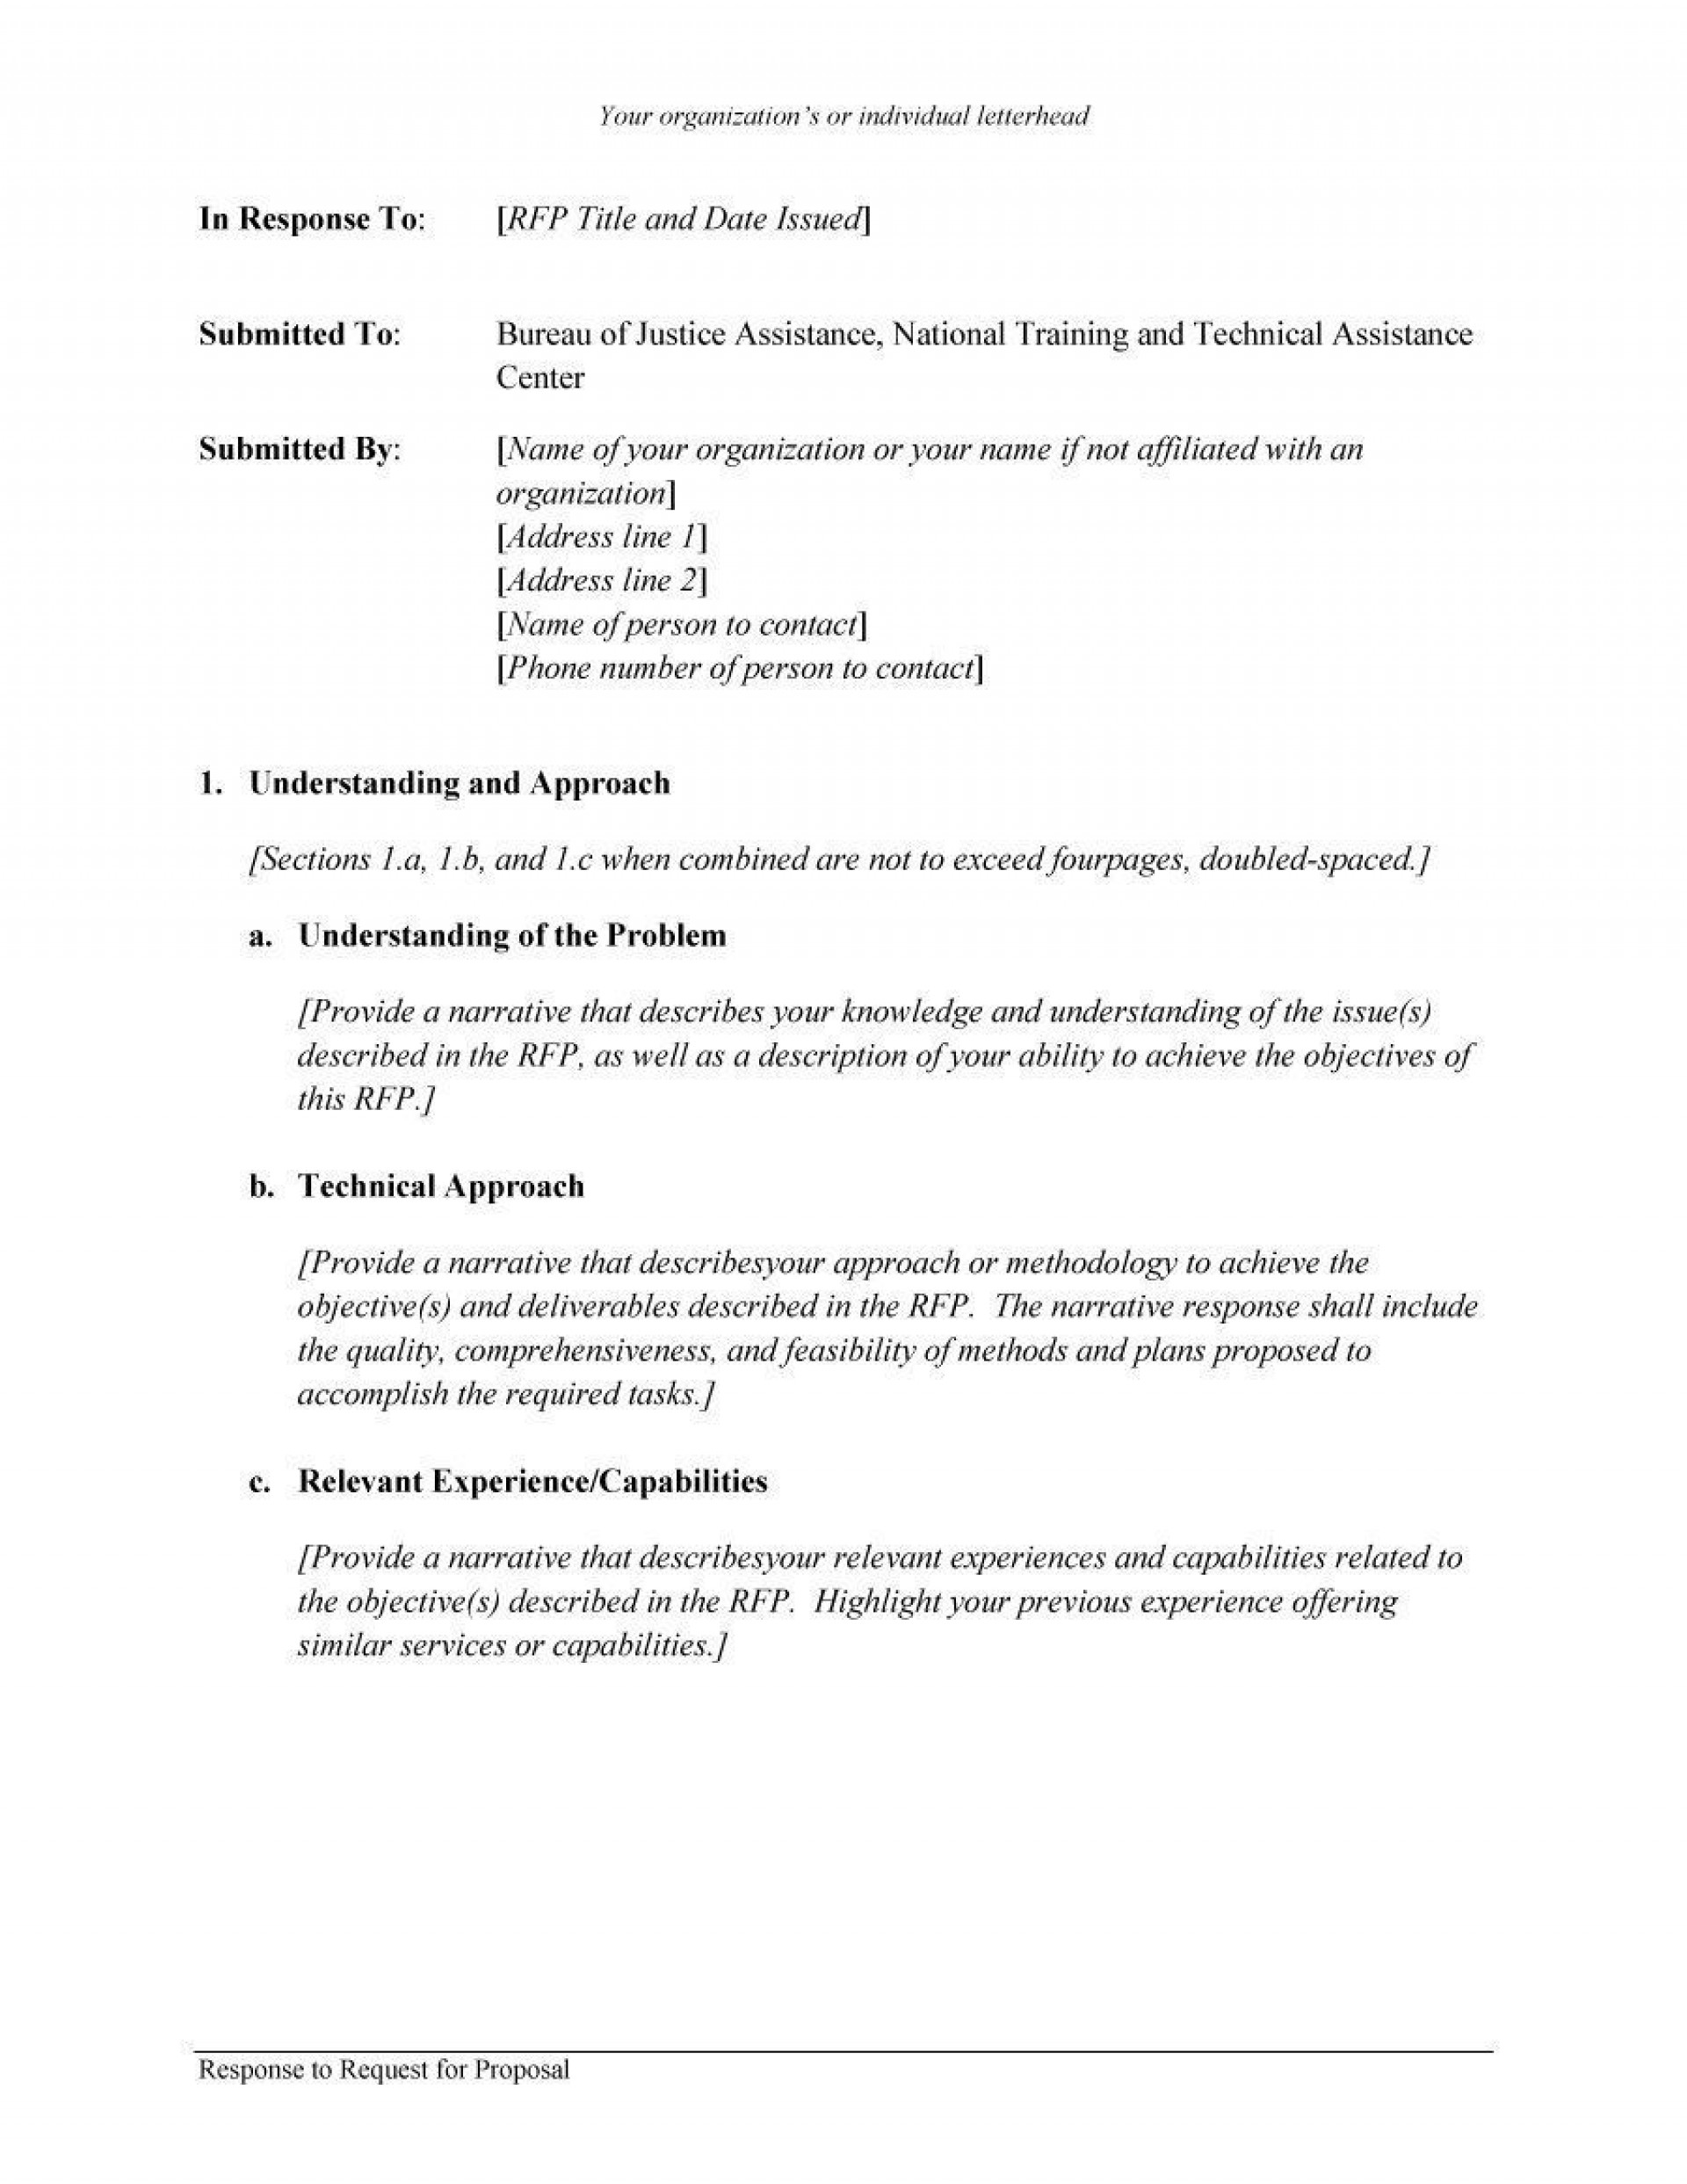 001 Unique Request For Proposal Response Template Free Picture 1920